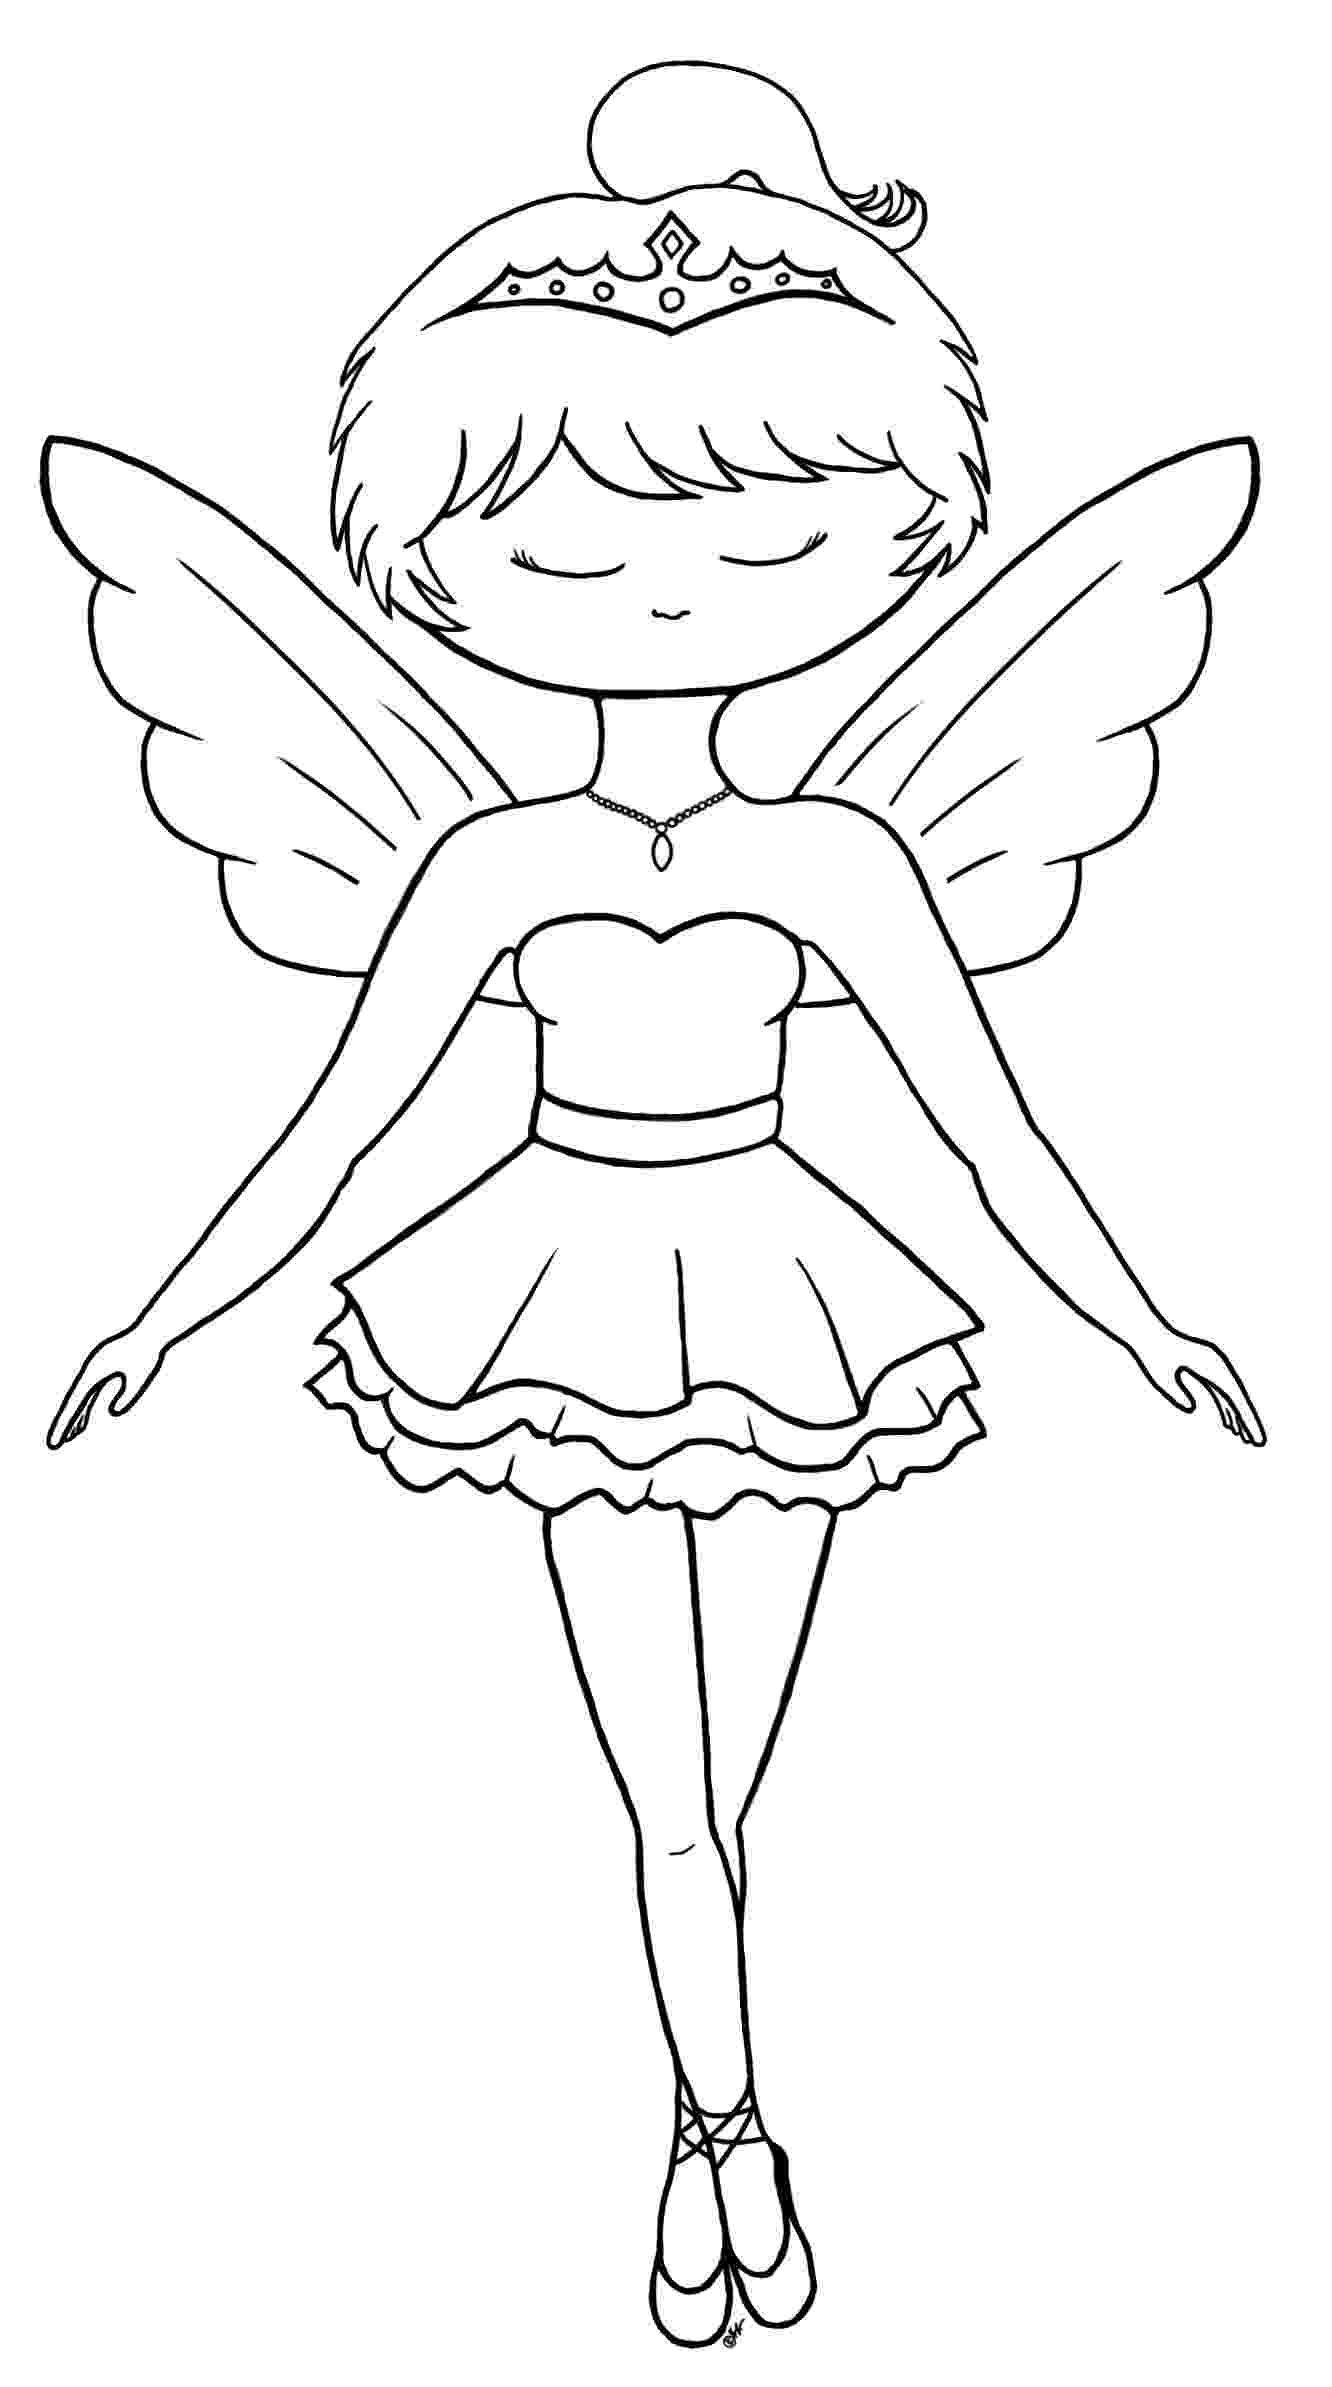 ballerina colouring picture ballerina coloring pages for childrens printable for free ballerina colouring picture